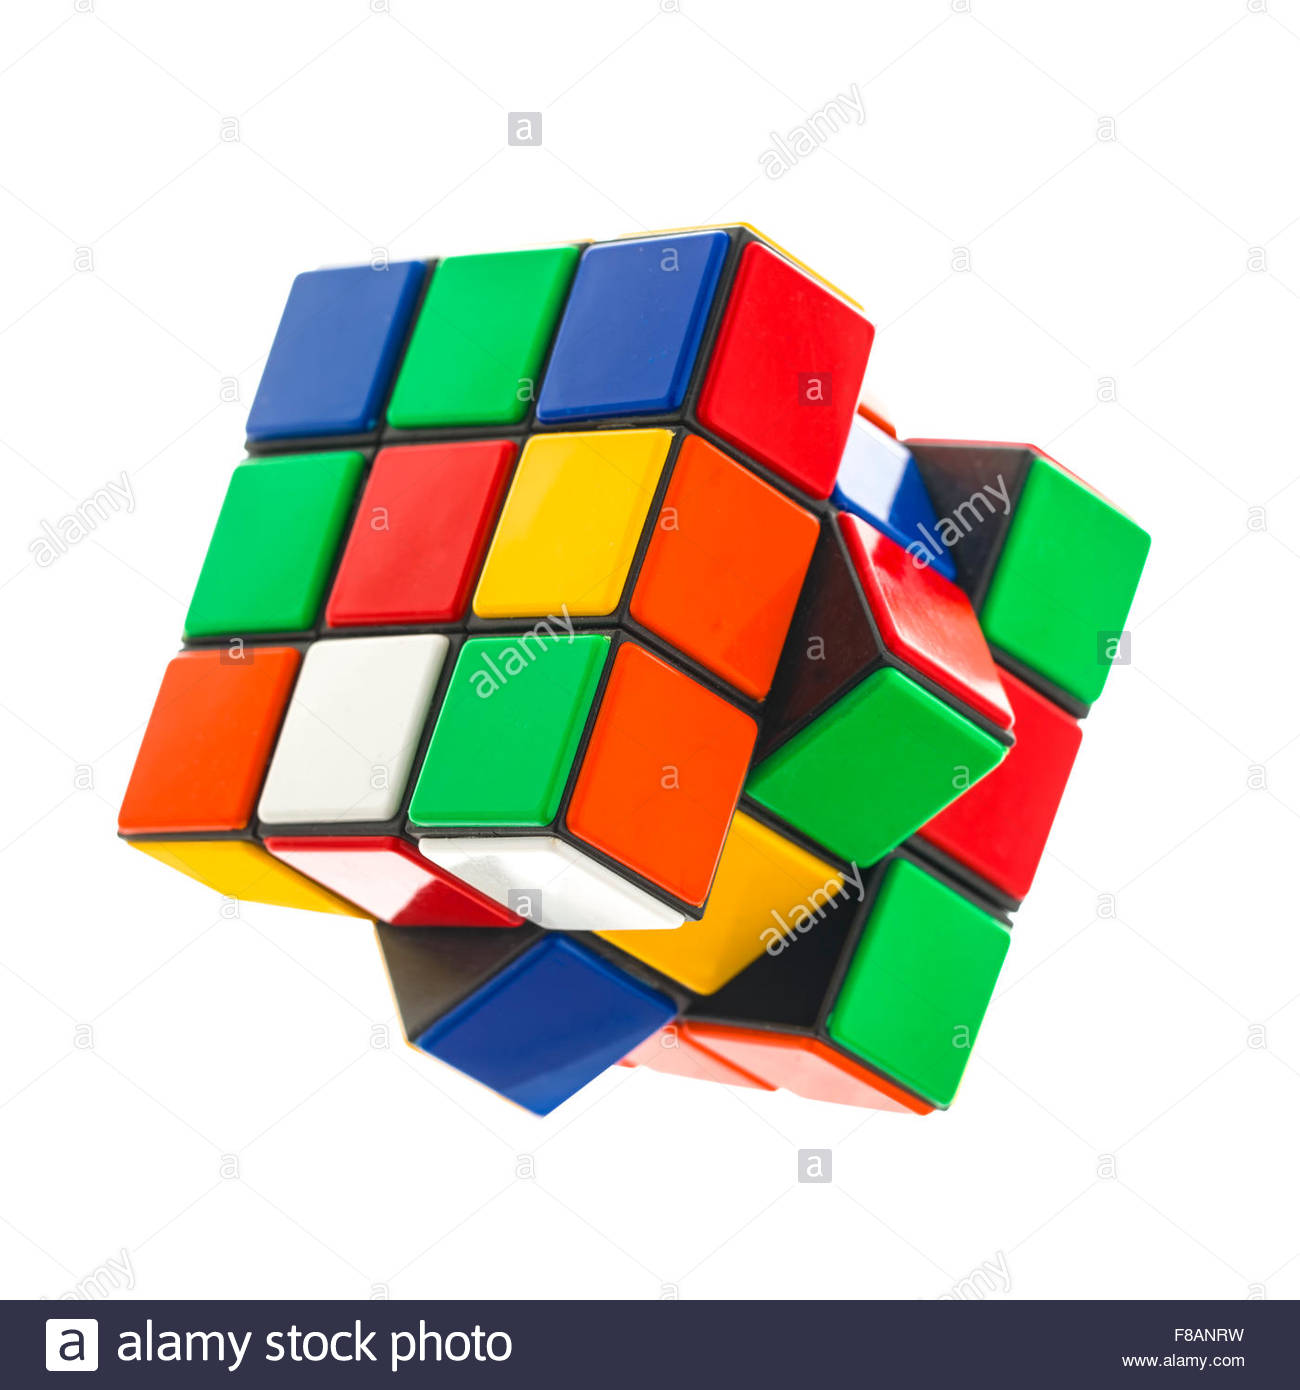 Rubik's Cube, Invented In 1974 By Hungarian Sculptor And.